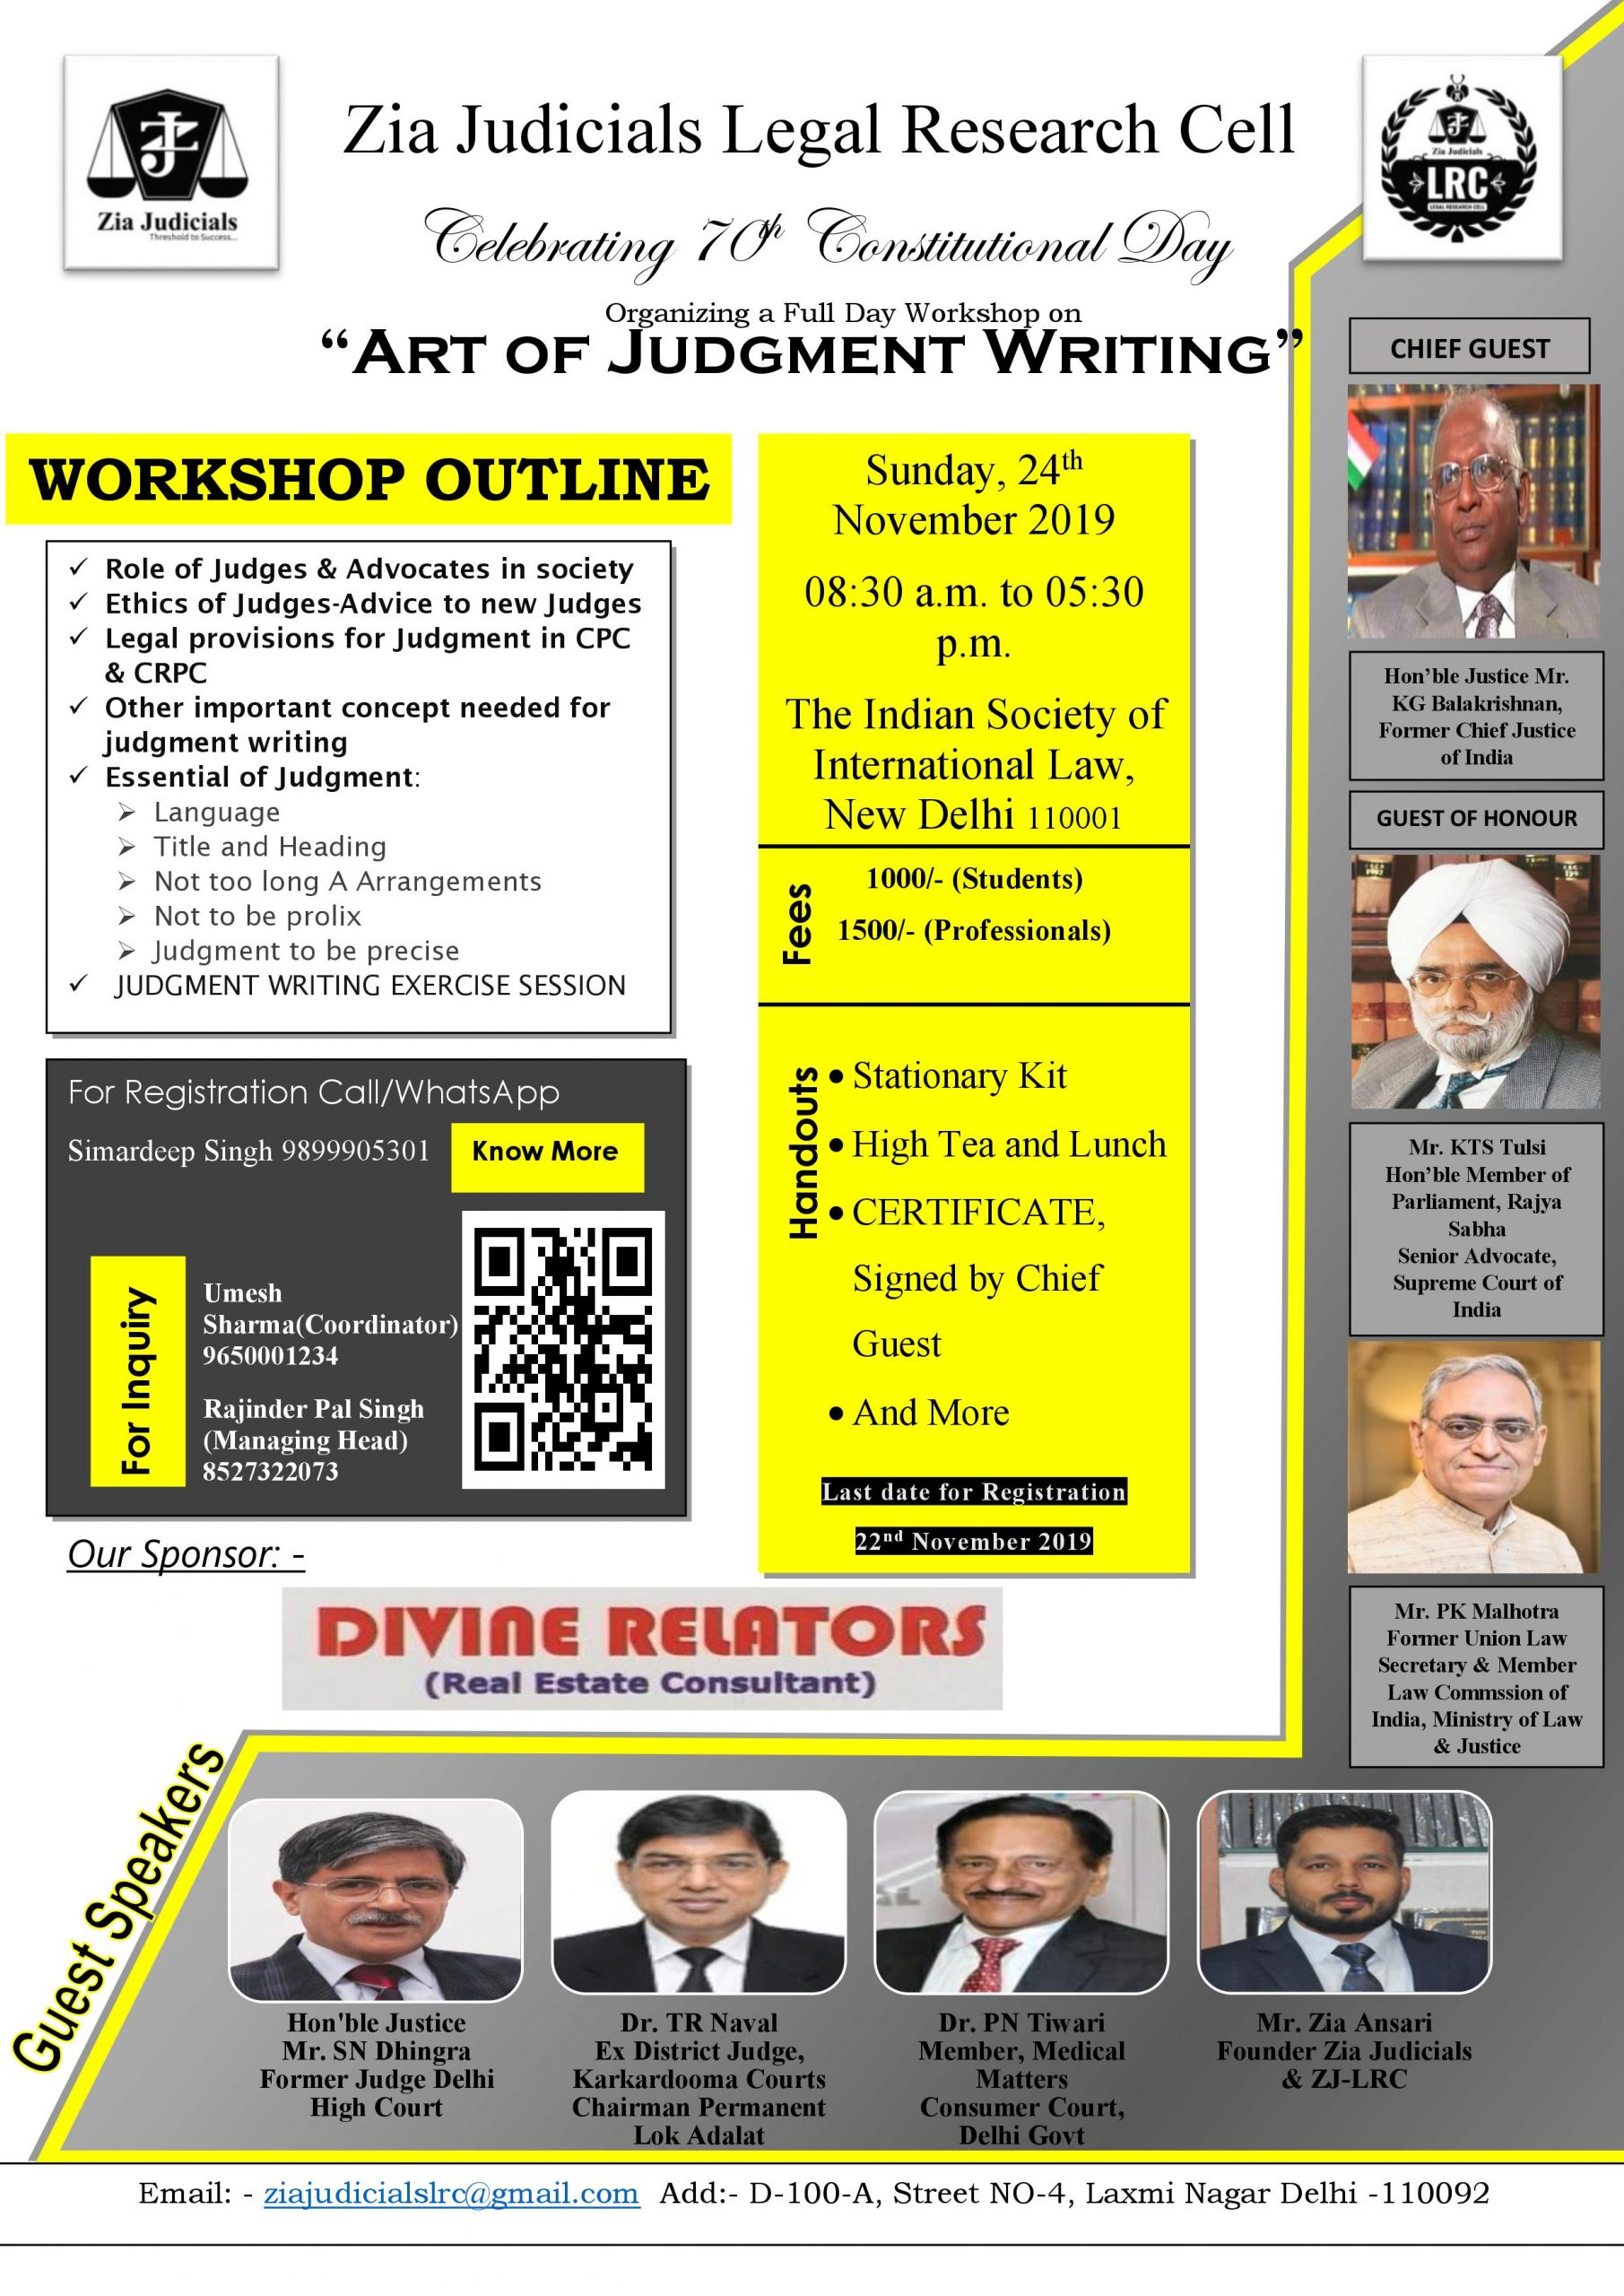 Workshop on Art of Judgment Writing by Zia Judicials Legal Research Cell, Delhi